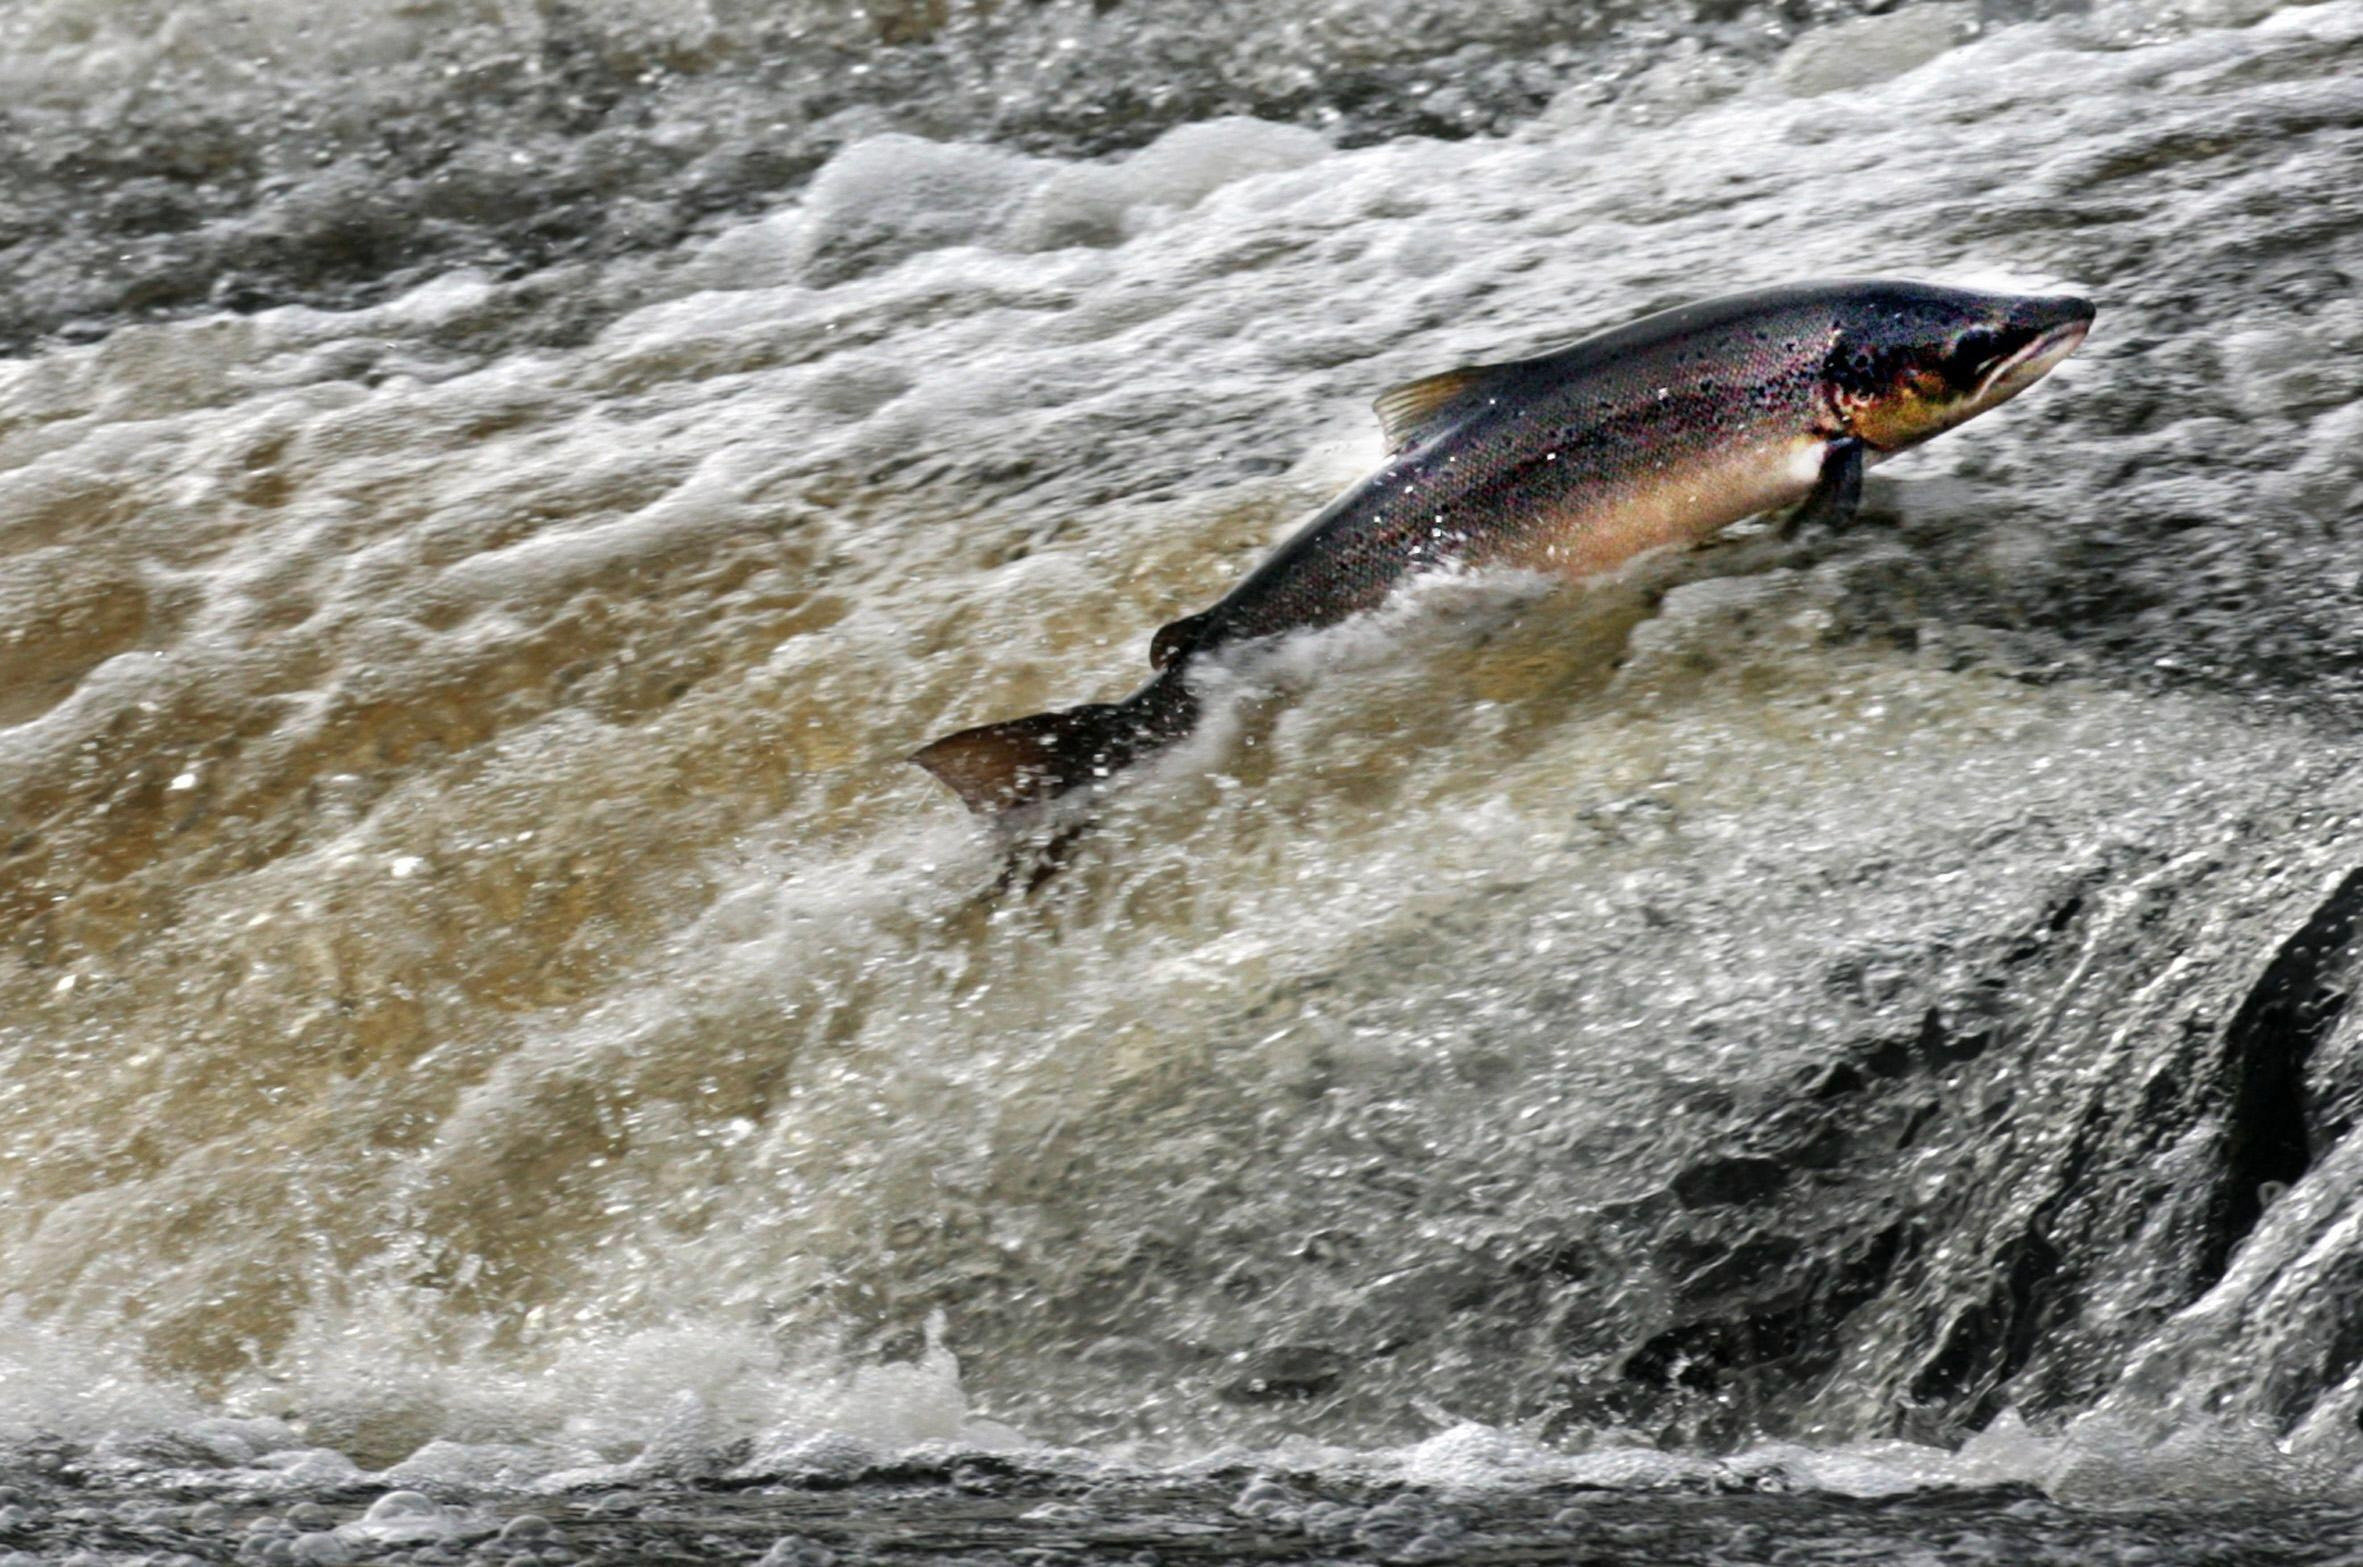 Scottish salmon account for 75 per cent of the UK's wild salmon production